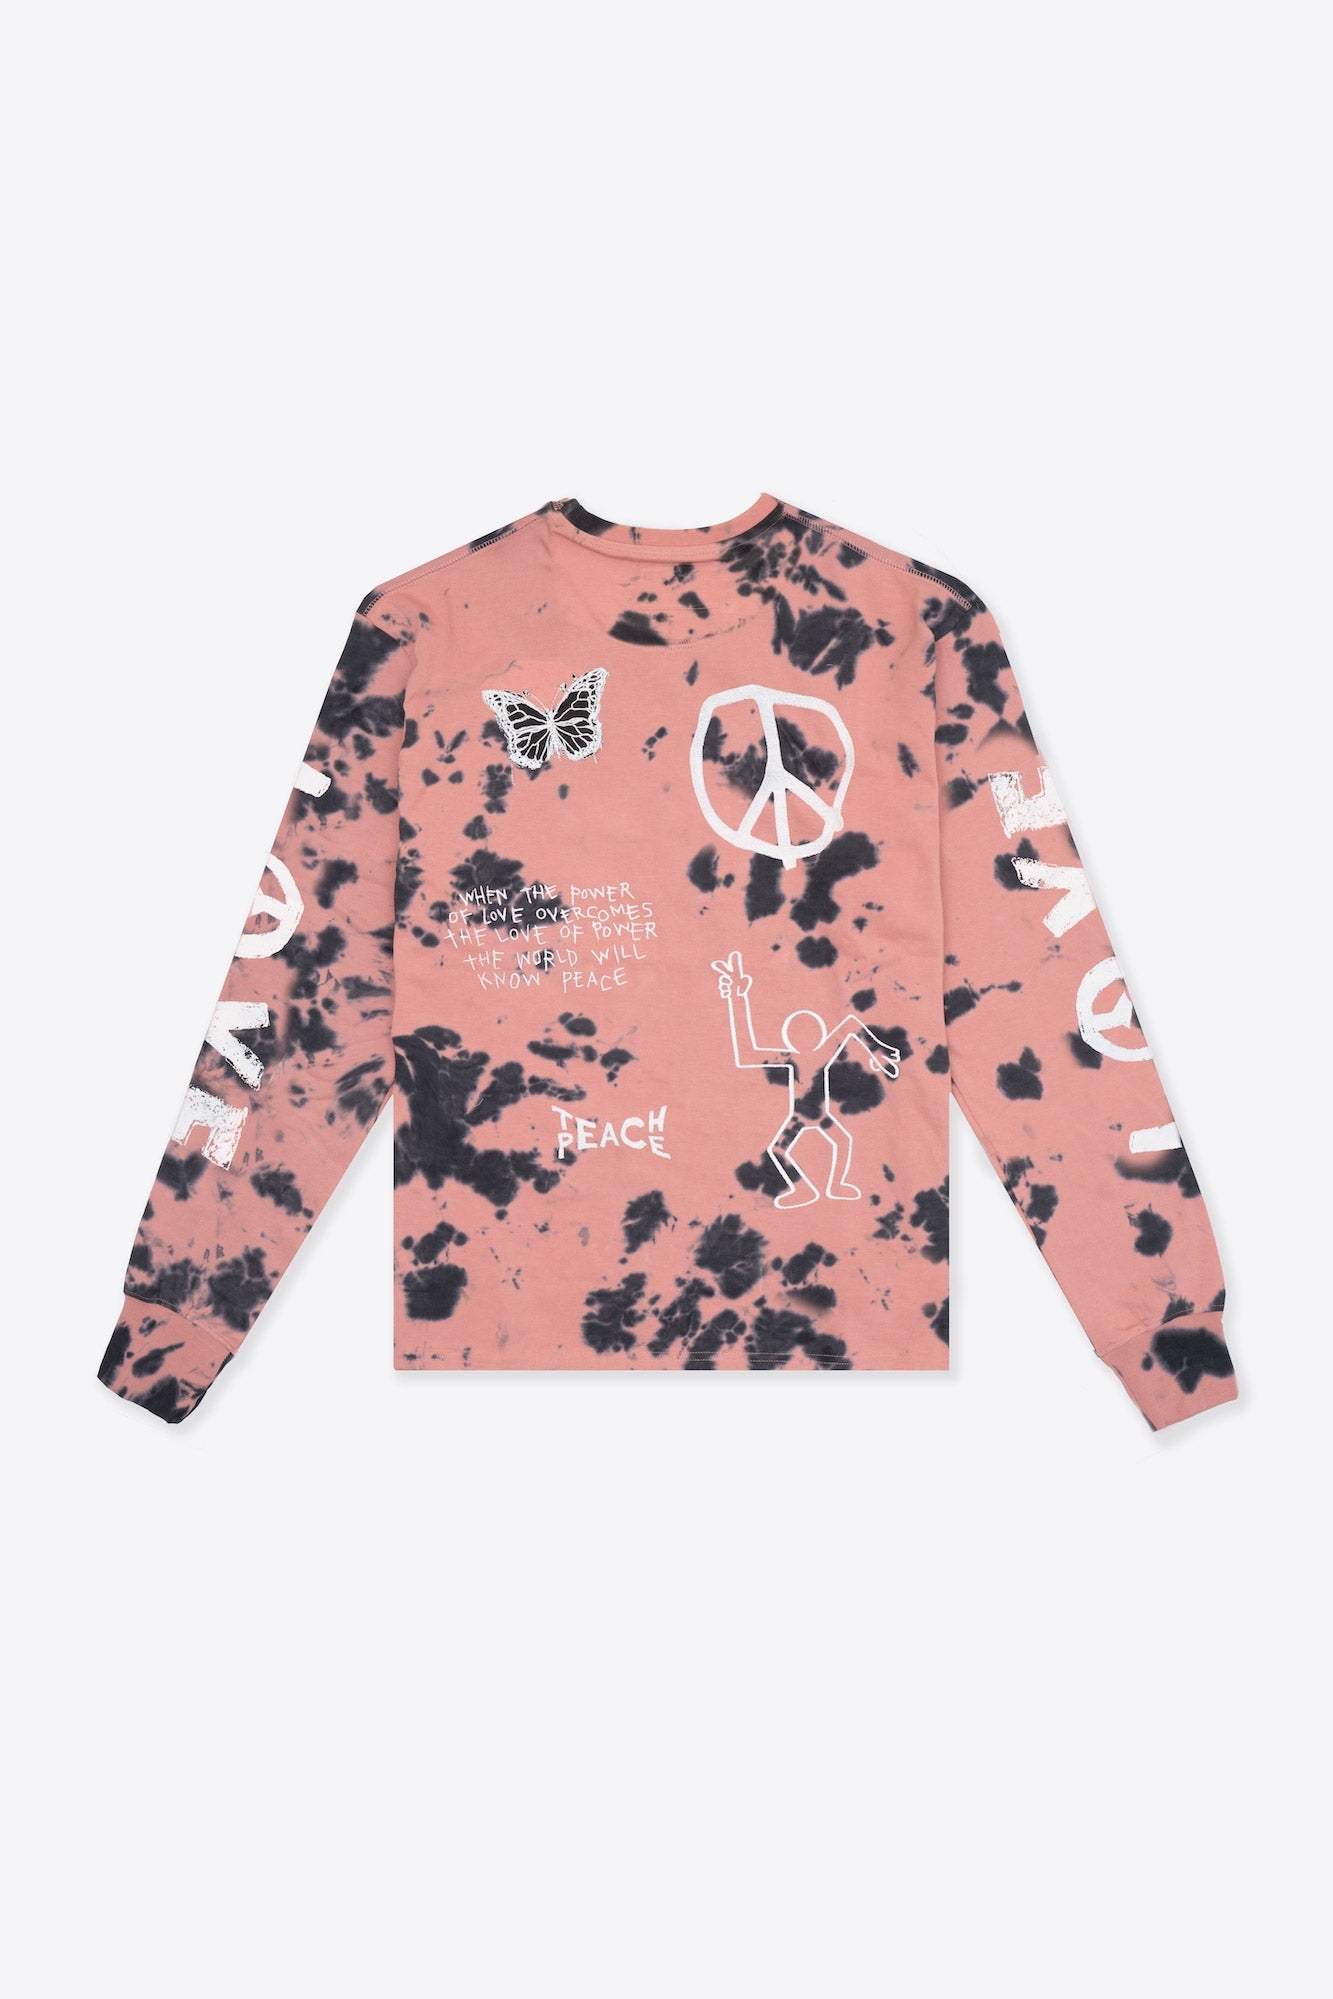 Tie Dye Love Peace Cuffed L/S T-Shirt (Dusty Rose/Black)